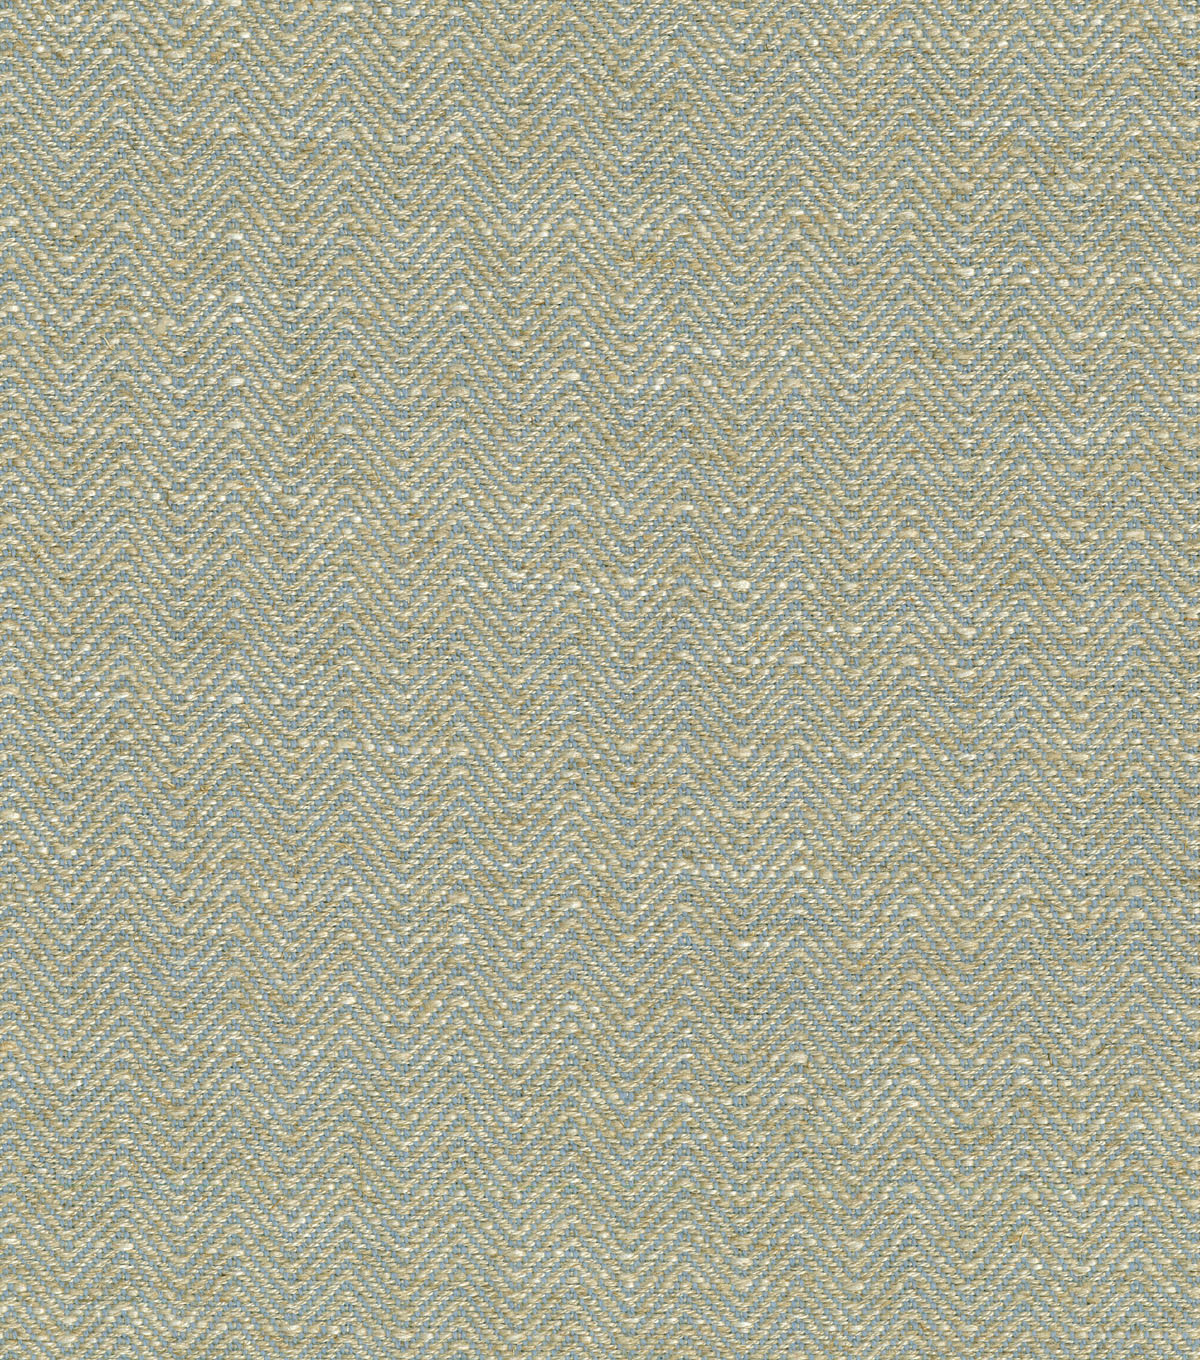 Home Decor 8\u0022x8\u0022 Fabric Swatch-Waverly Casanova Chambray